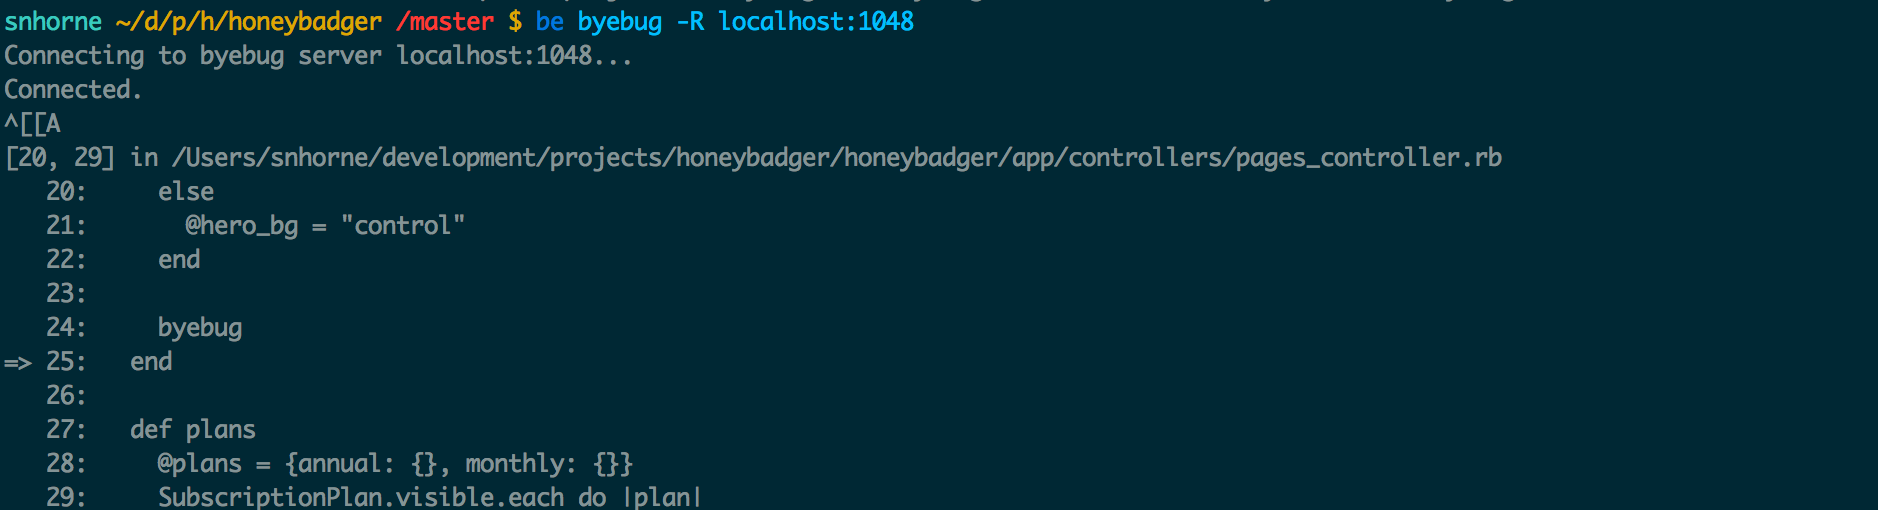 Remote Debugging with Byebug, Rails and Pow - Honeybadger